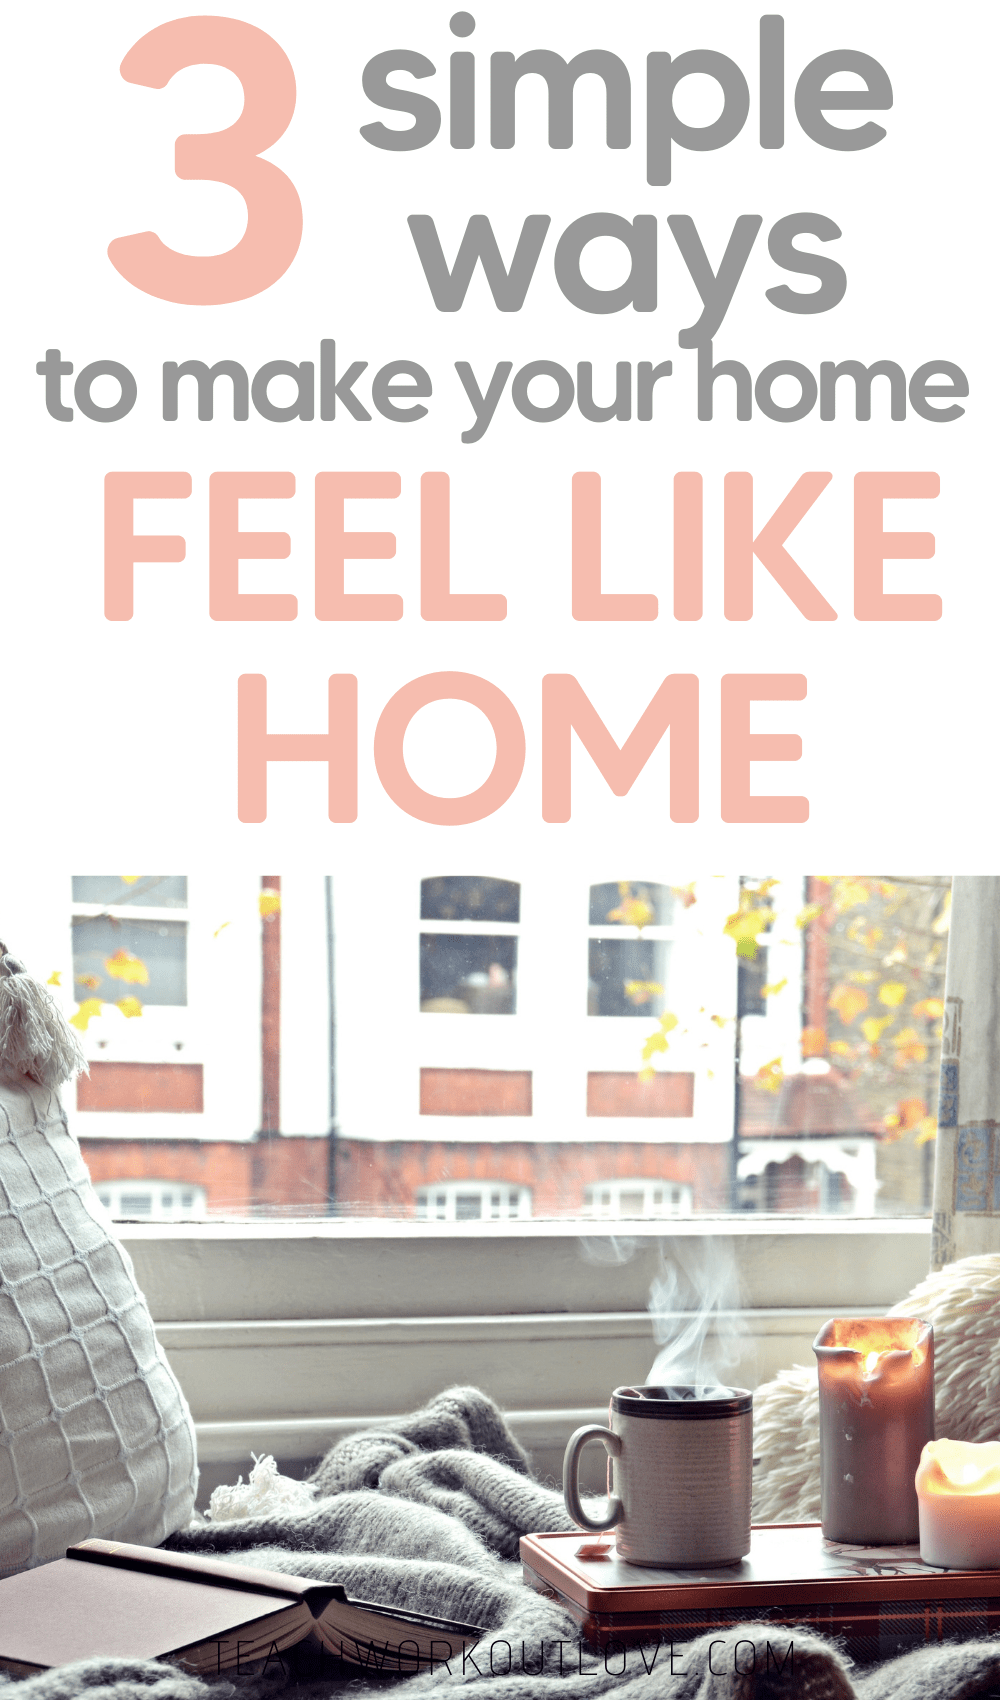 Your home should be the place you feel most safe and most comfortable in the entire world. Here's 3 simple tips to make it feel like home.